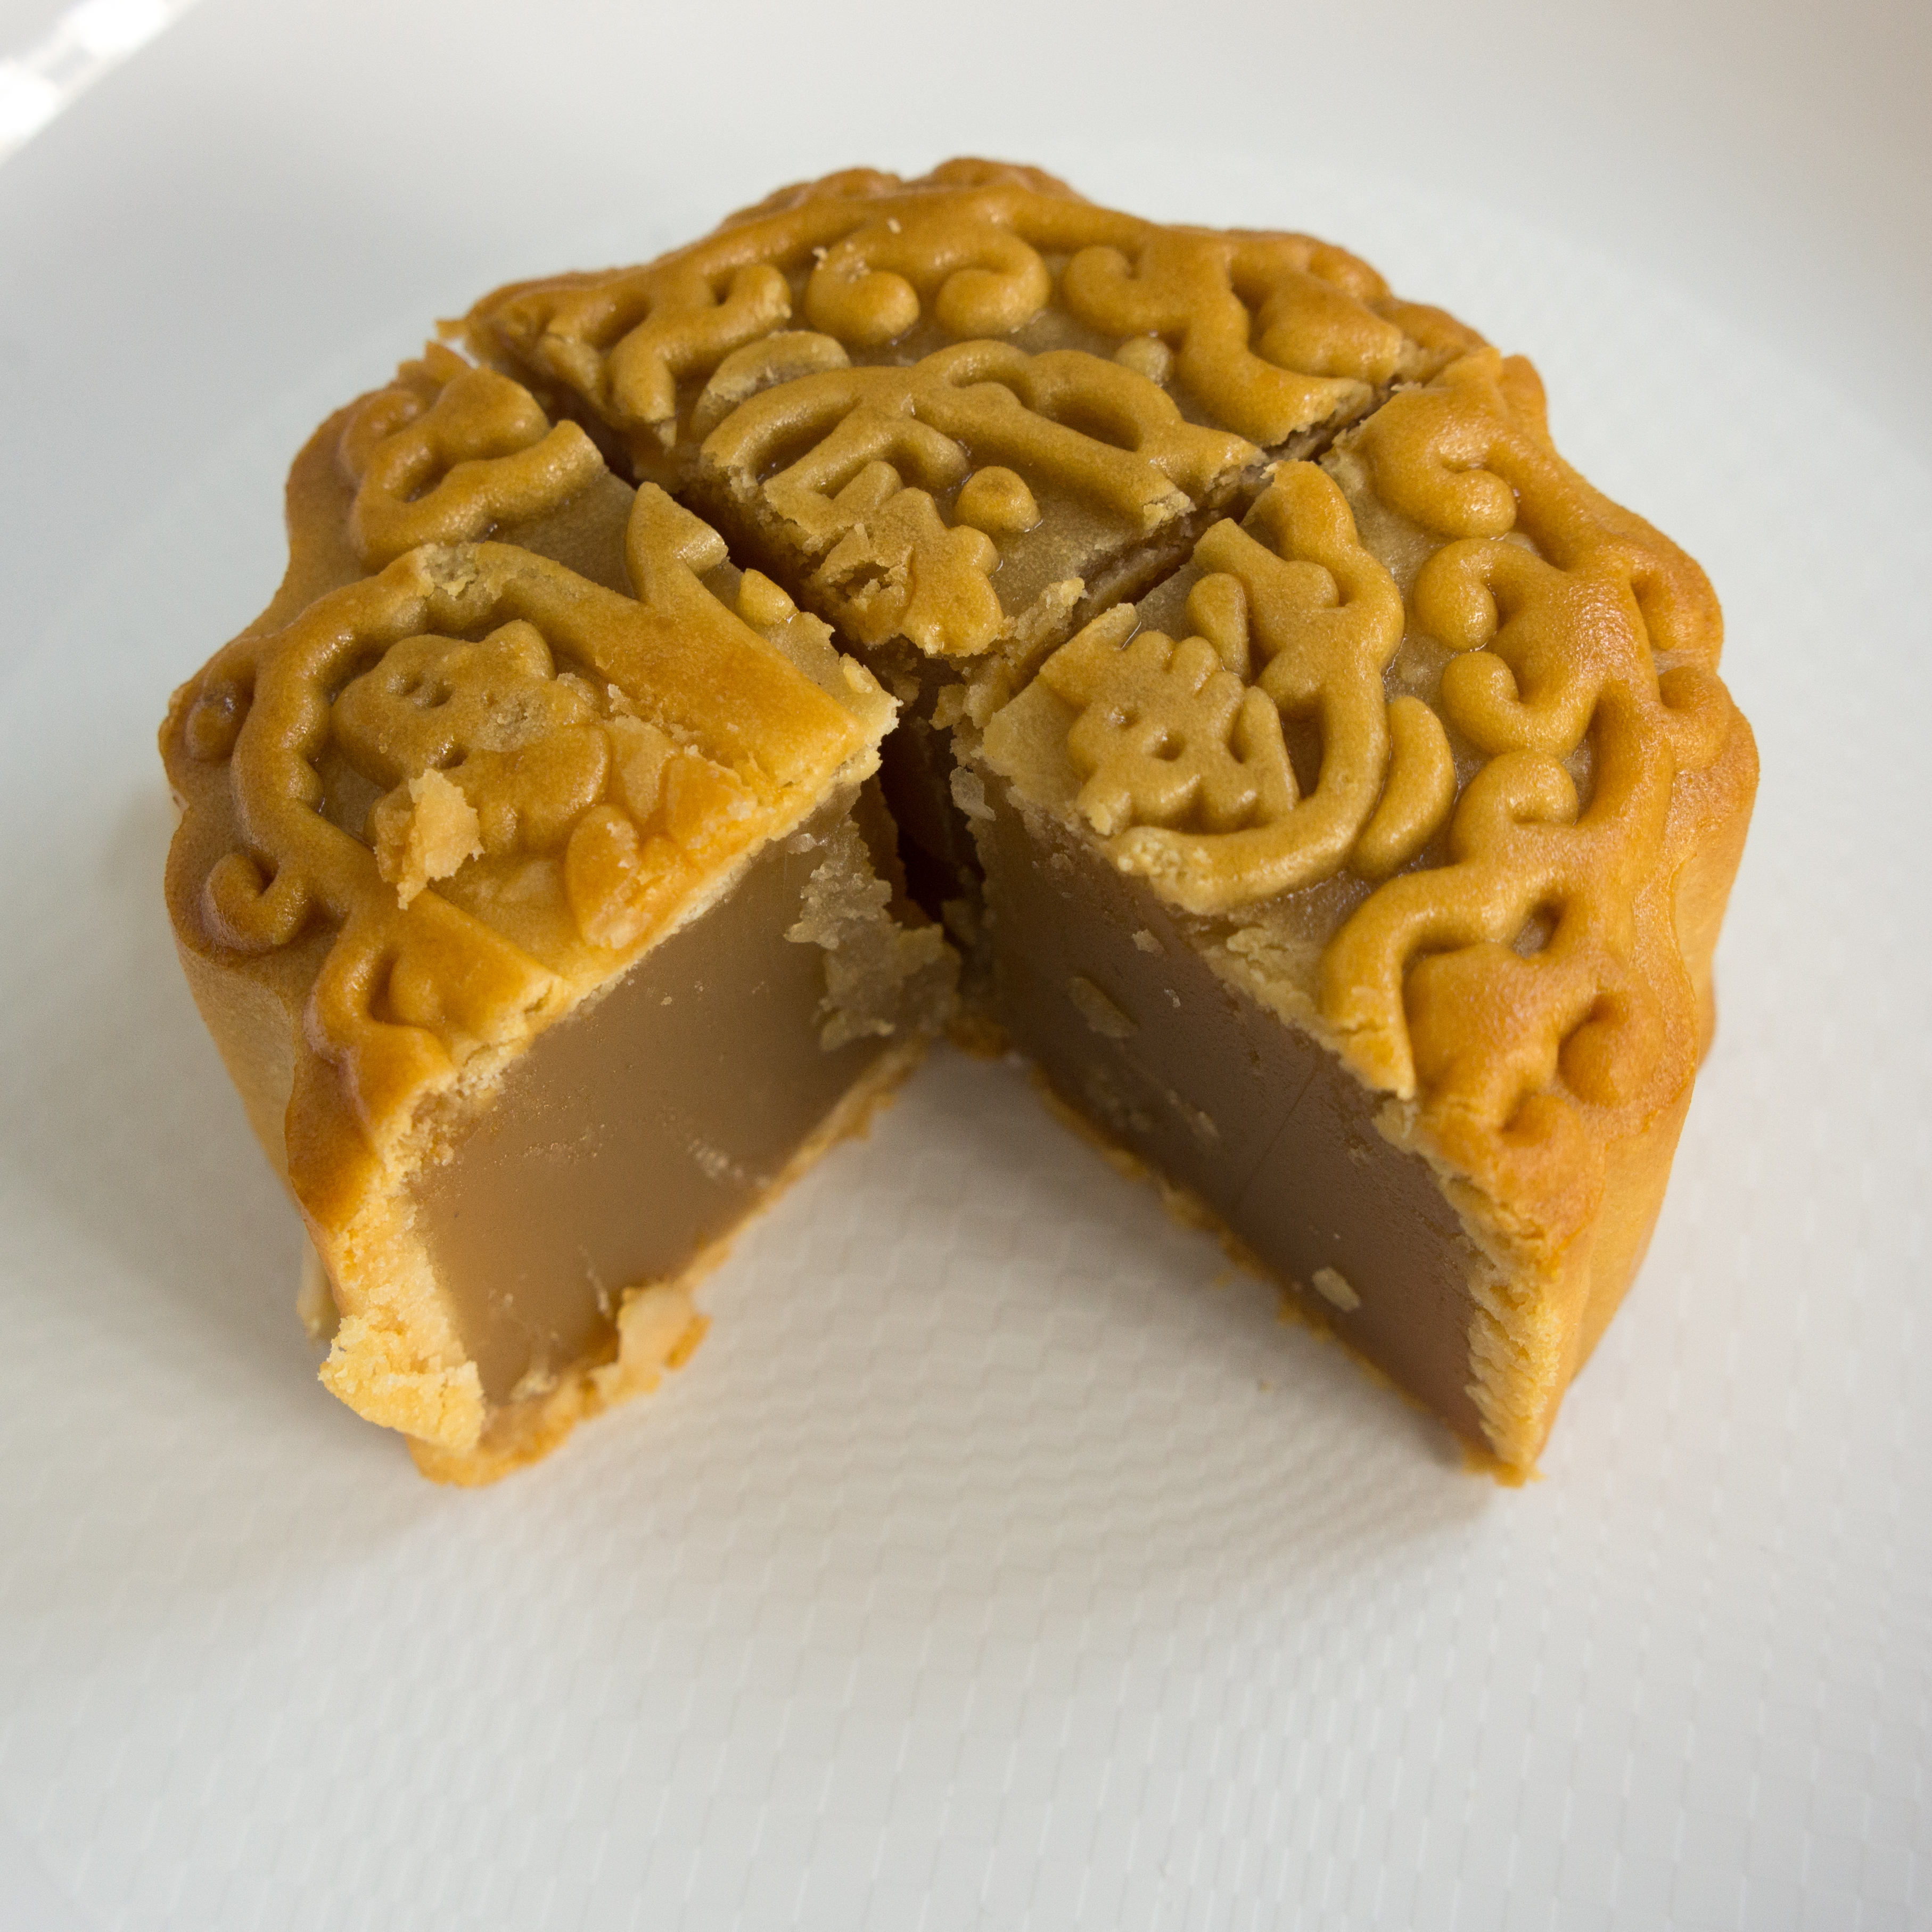 File:Mooncake 3-4, lotus seed paste.jpg - Wikimedia Commons